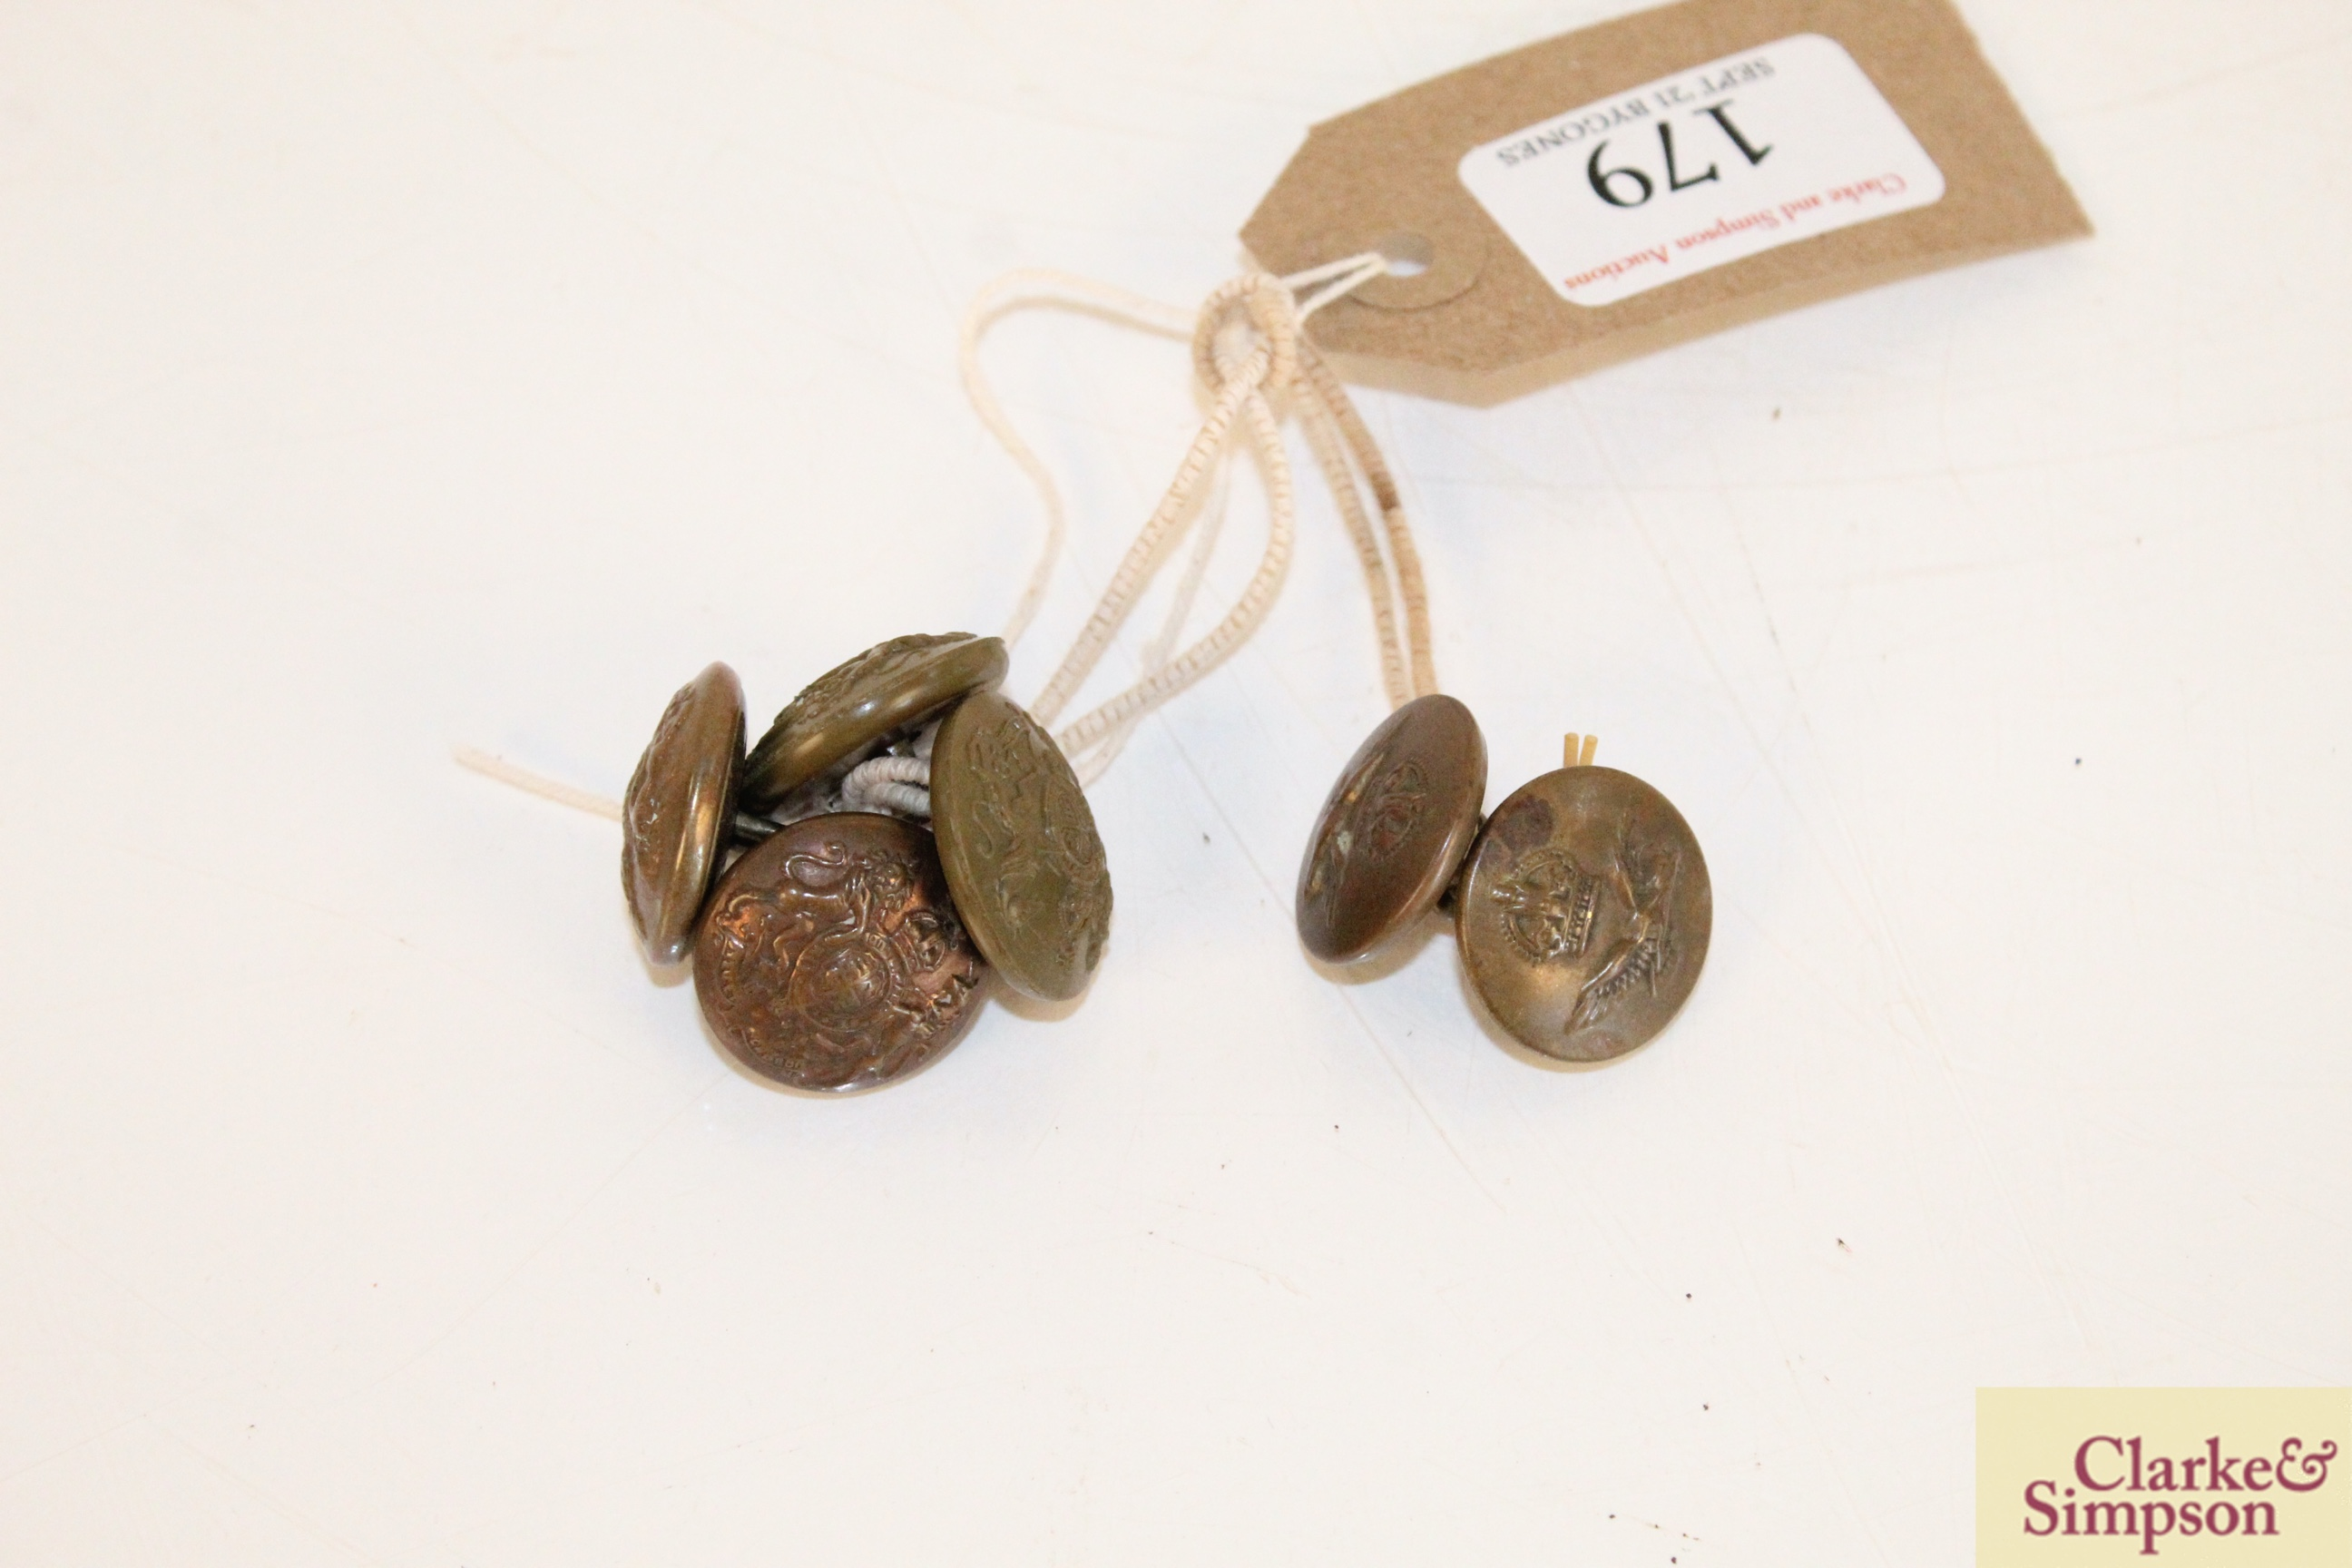 Two WW1 RAF buttons and four General Service buttons